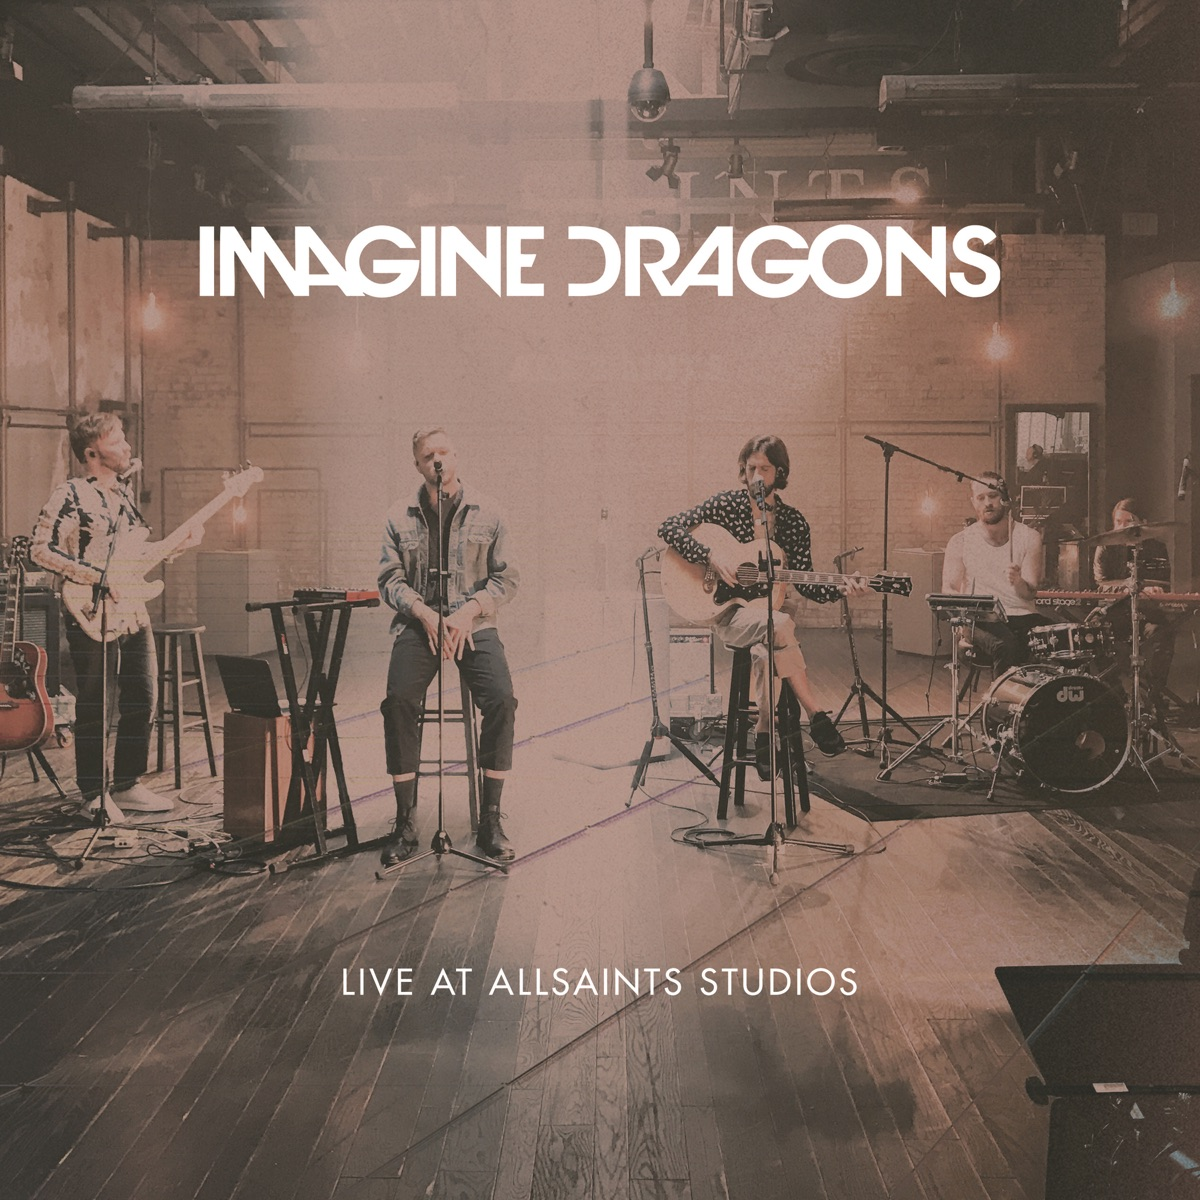 Live at AllSaints Studios - EP Imagine Dragons CD cover